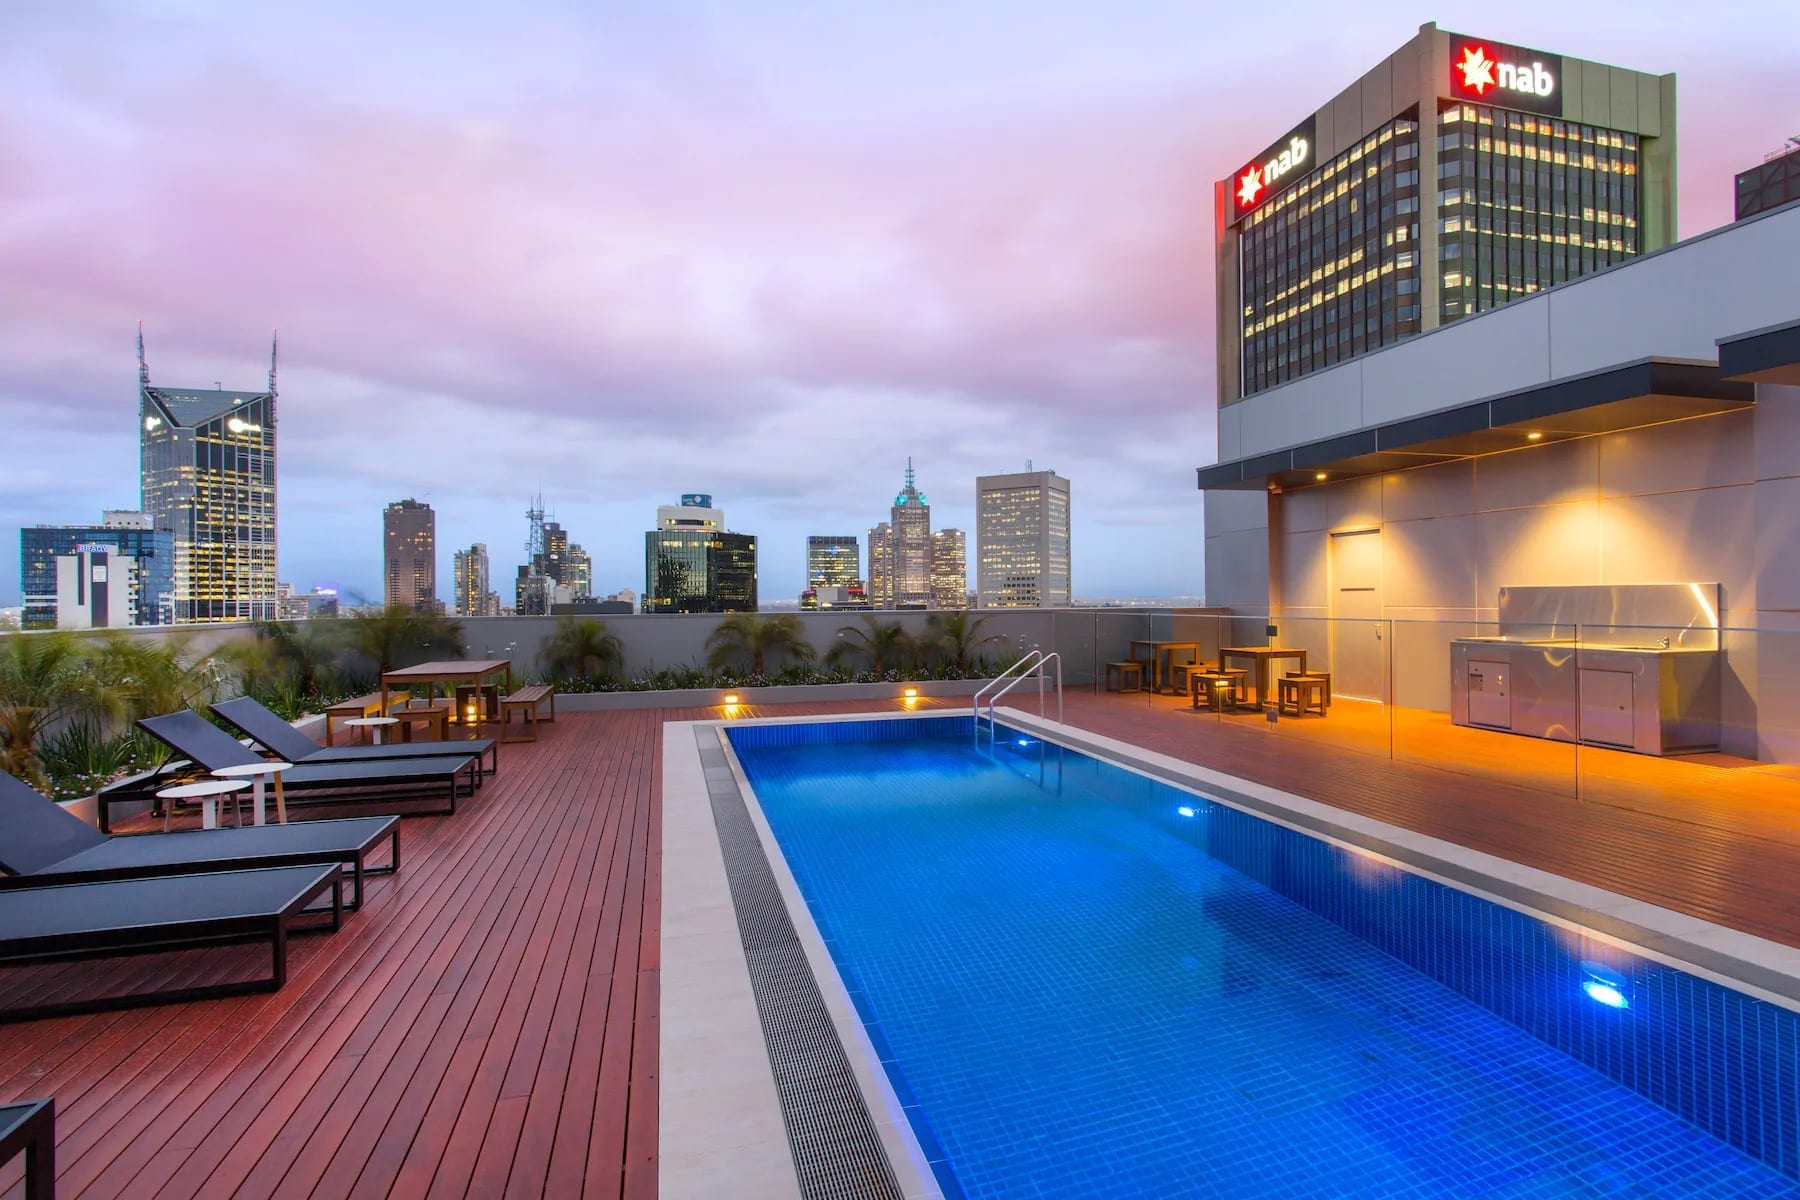 Wyndham Hotel Melbourne Suite Pool View 4